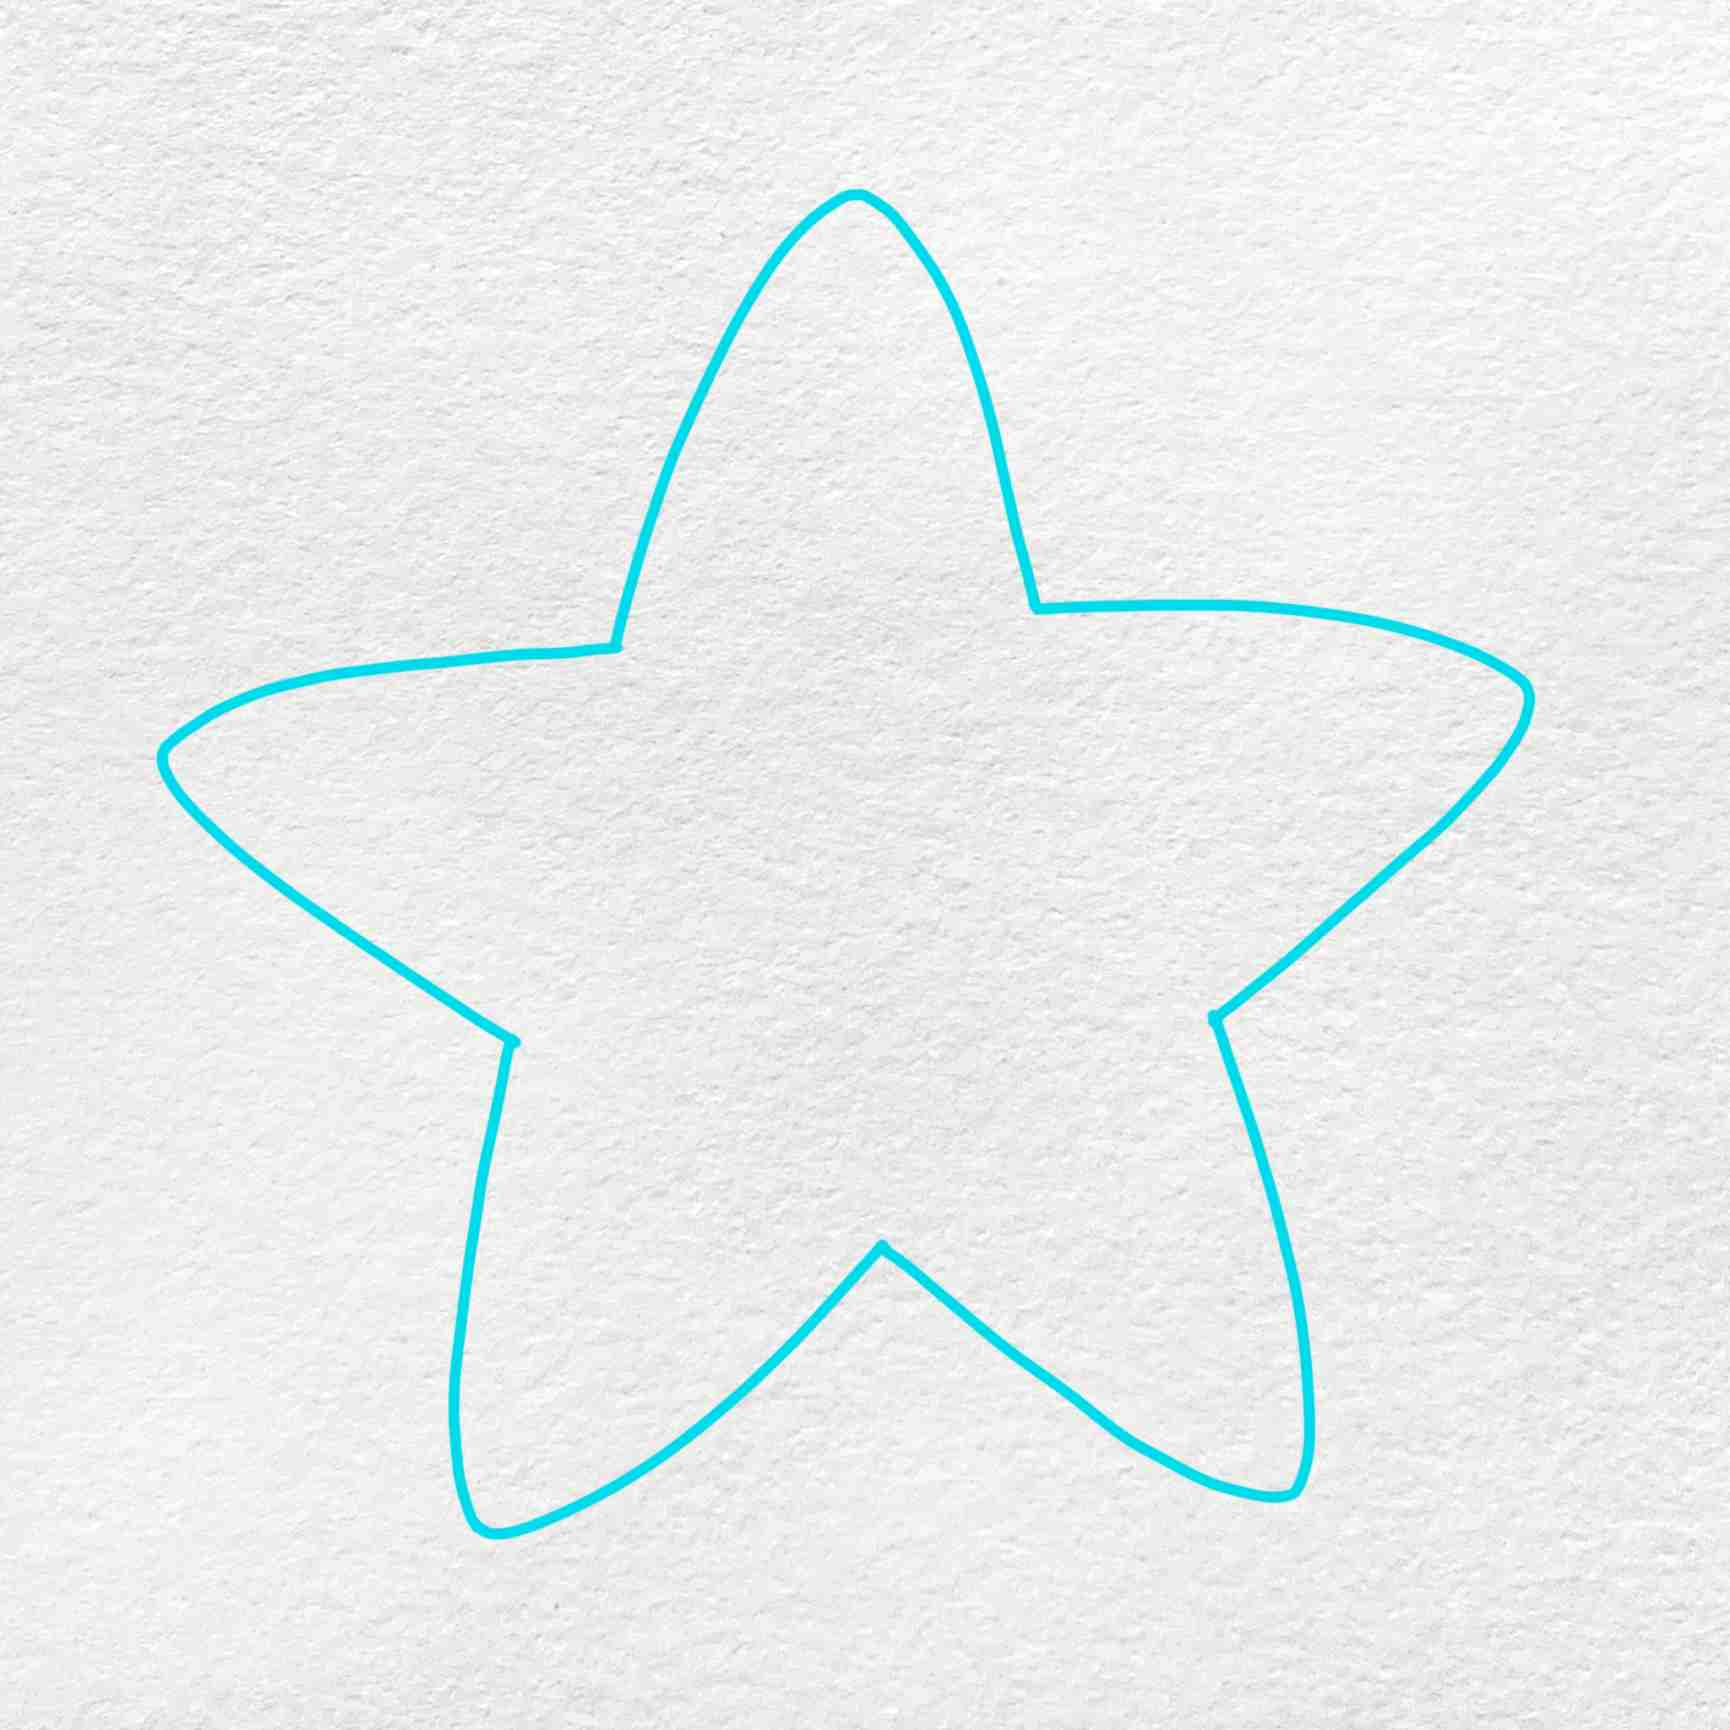 How To Draw A Starfish: Step 1